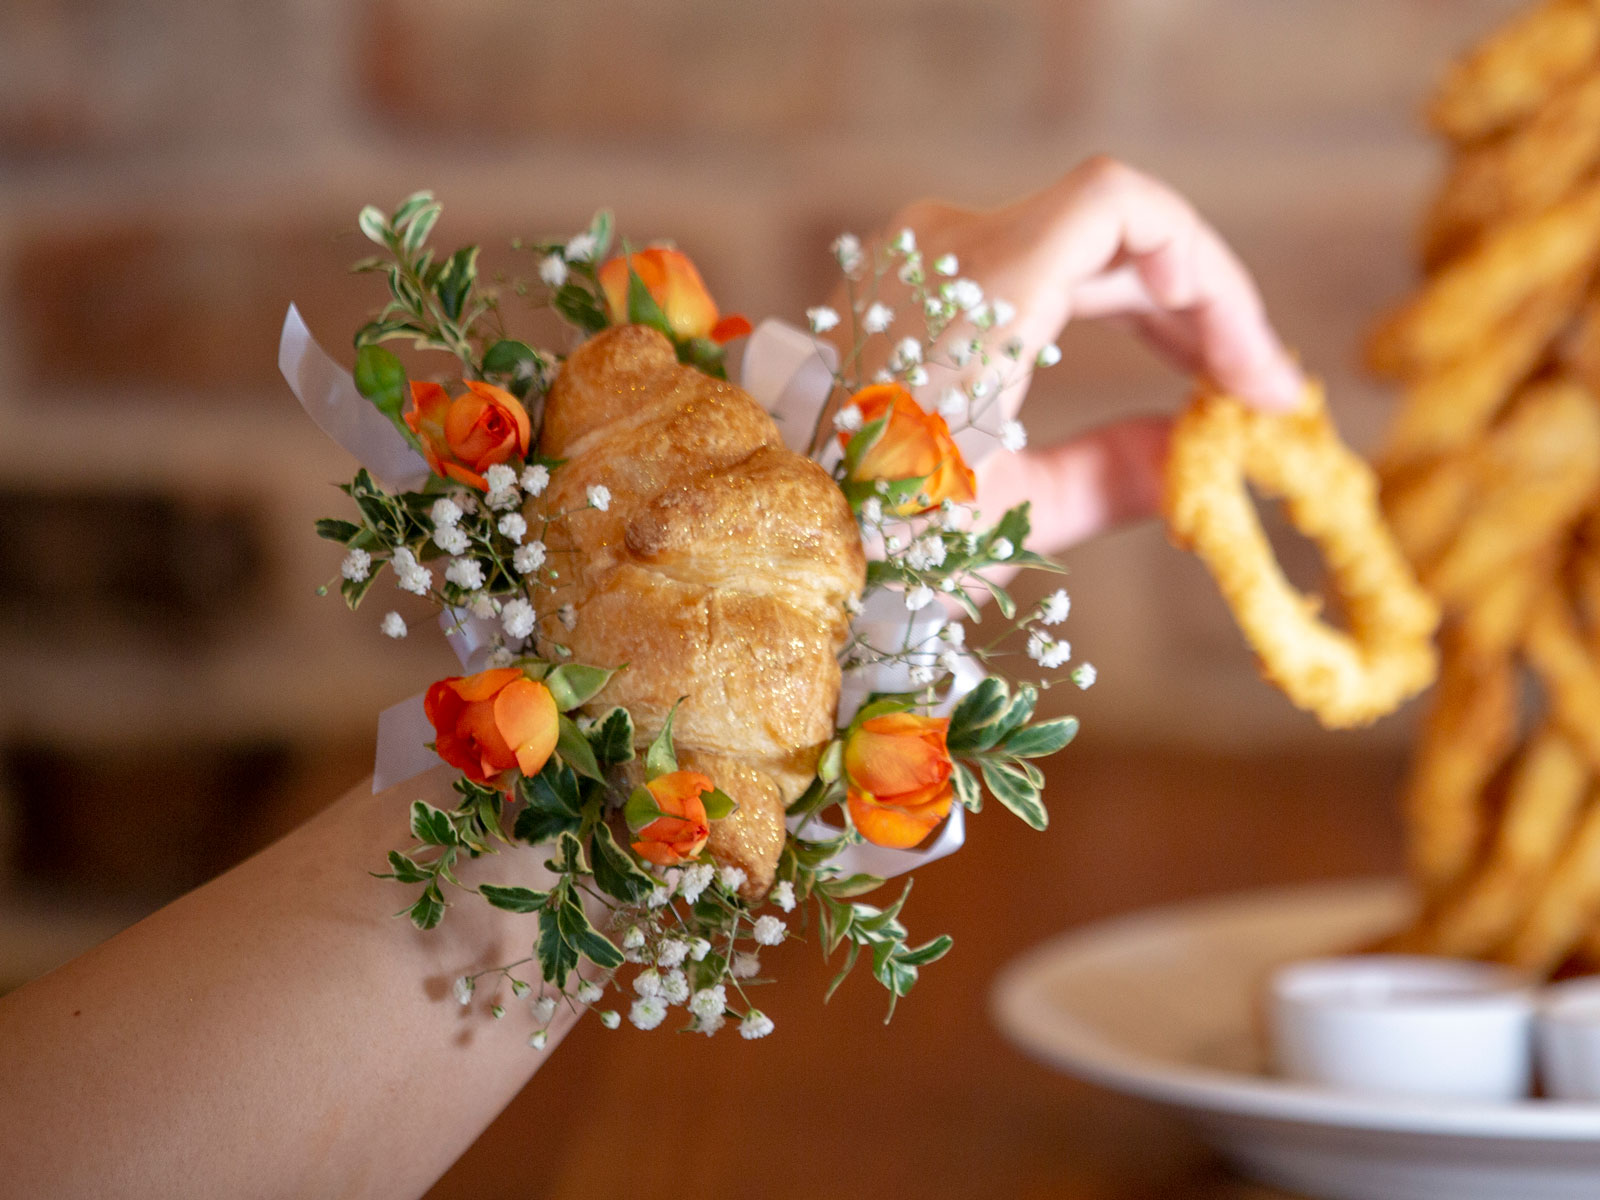 These 'Croissant Corsages' Turn an Autocorrect Joke Into an Edible Prom Necessity